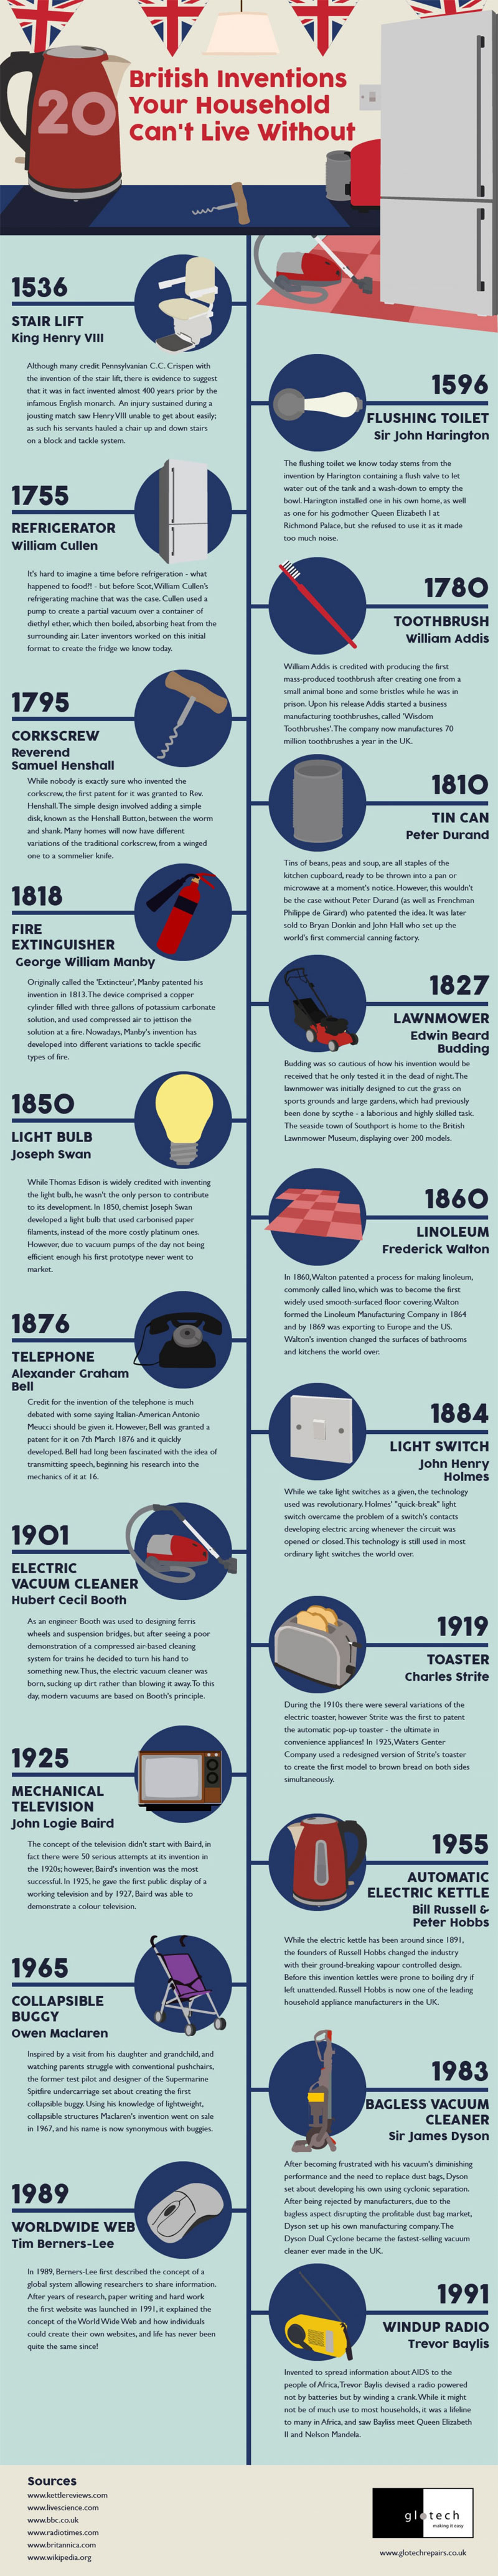 info2 - Top 15 British Inventions That Changed the World Forever